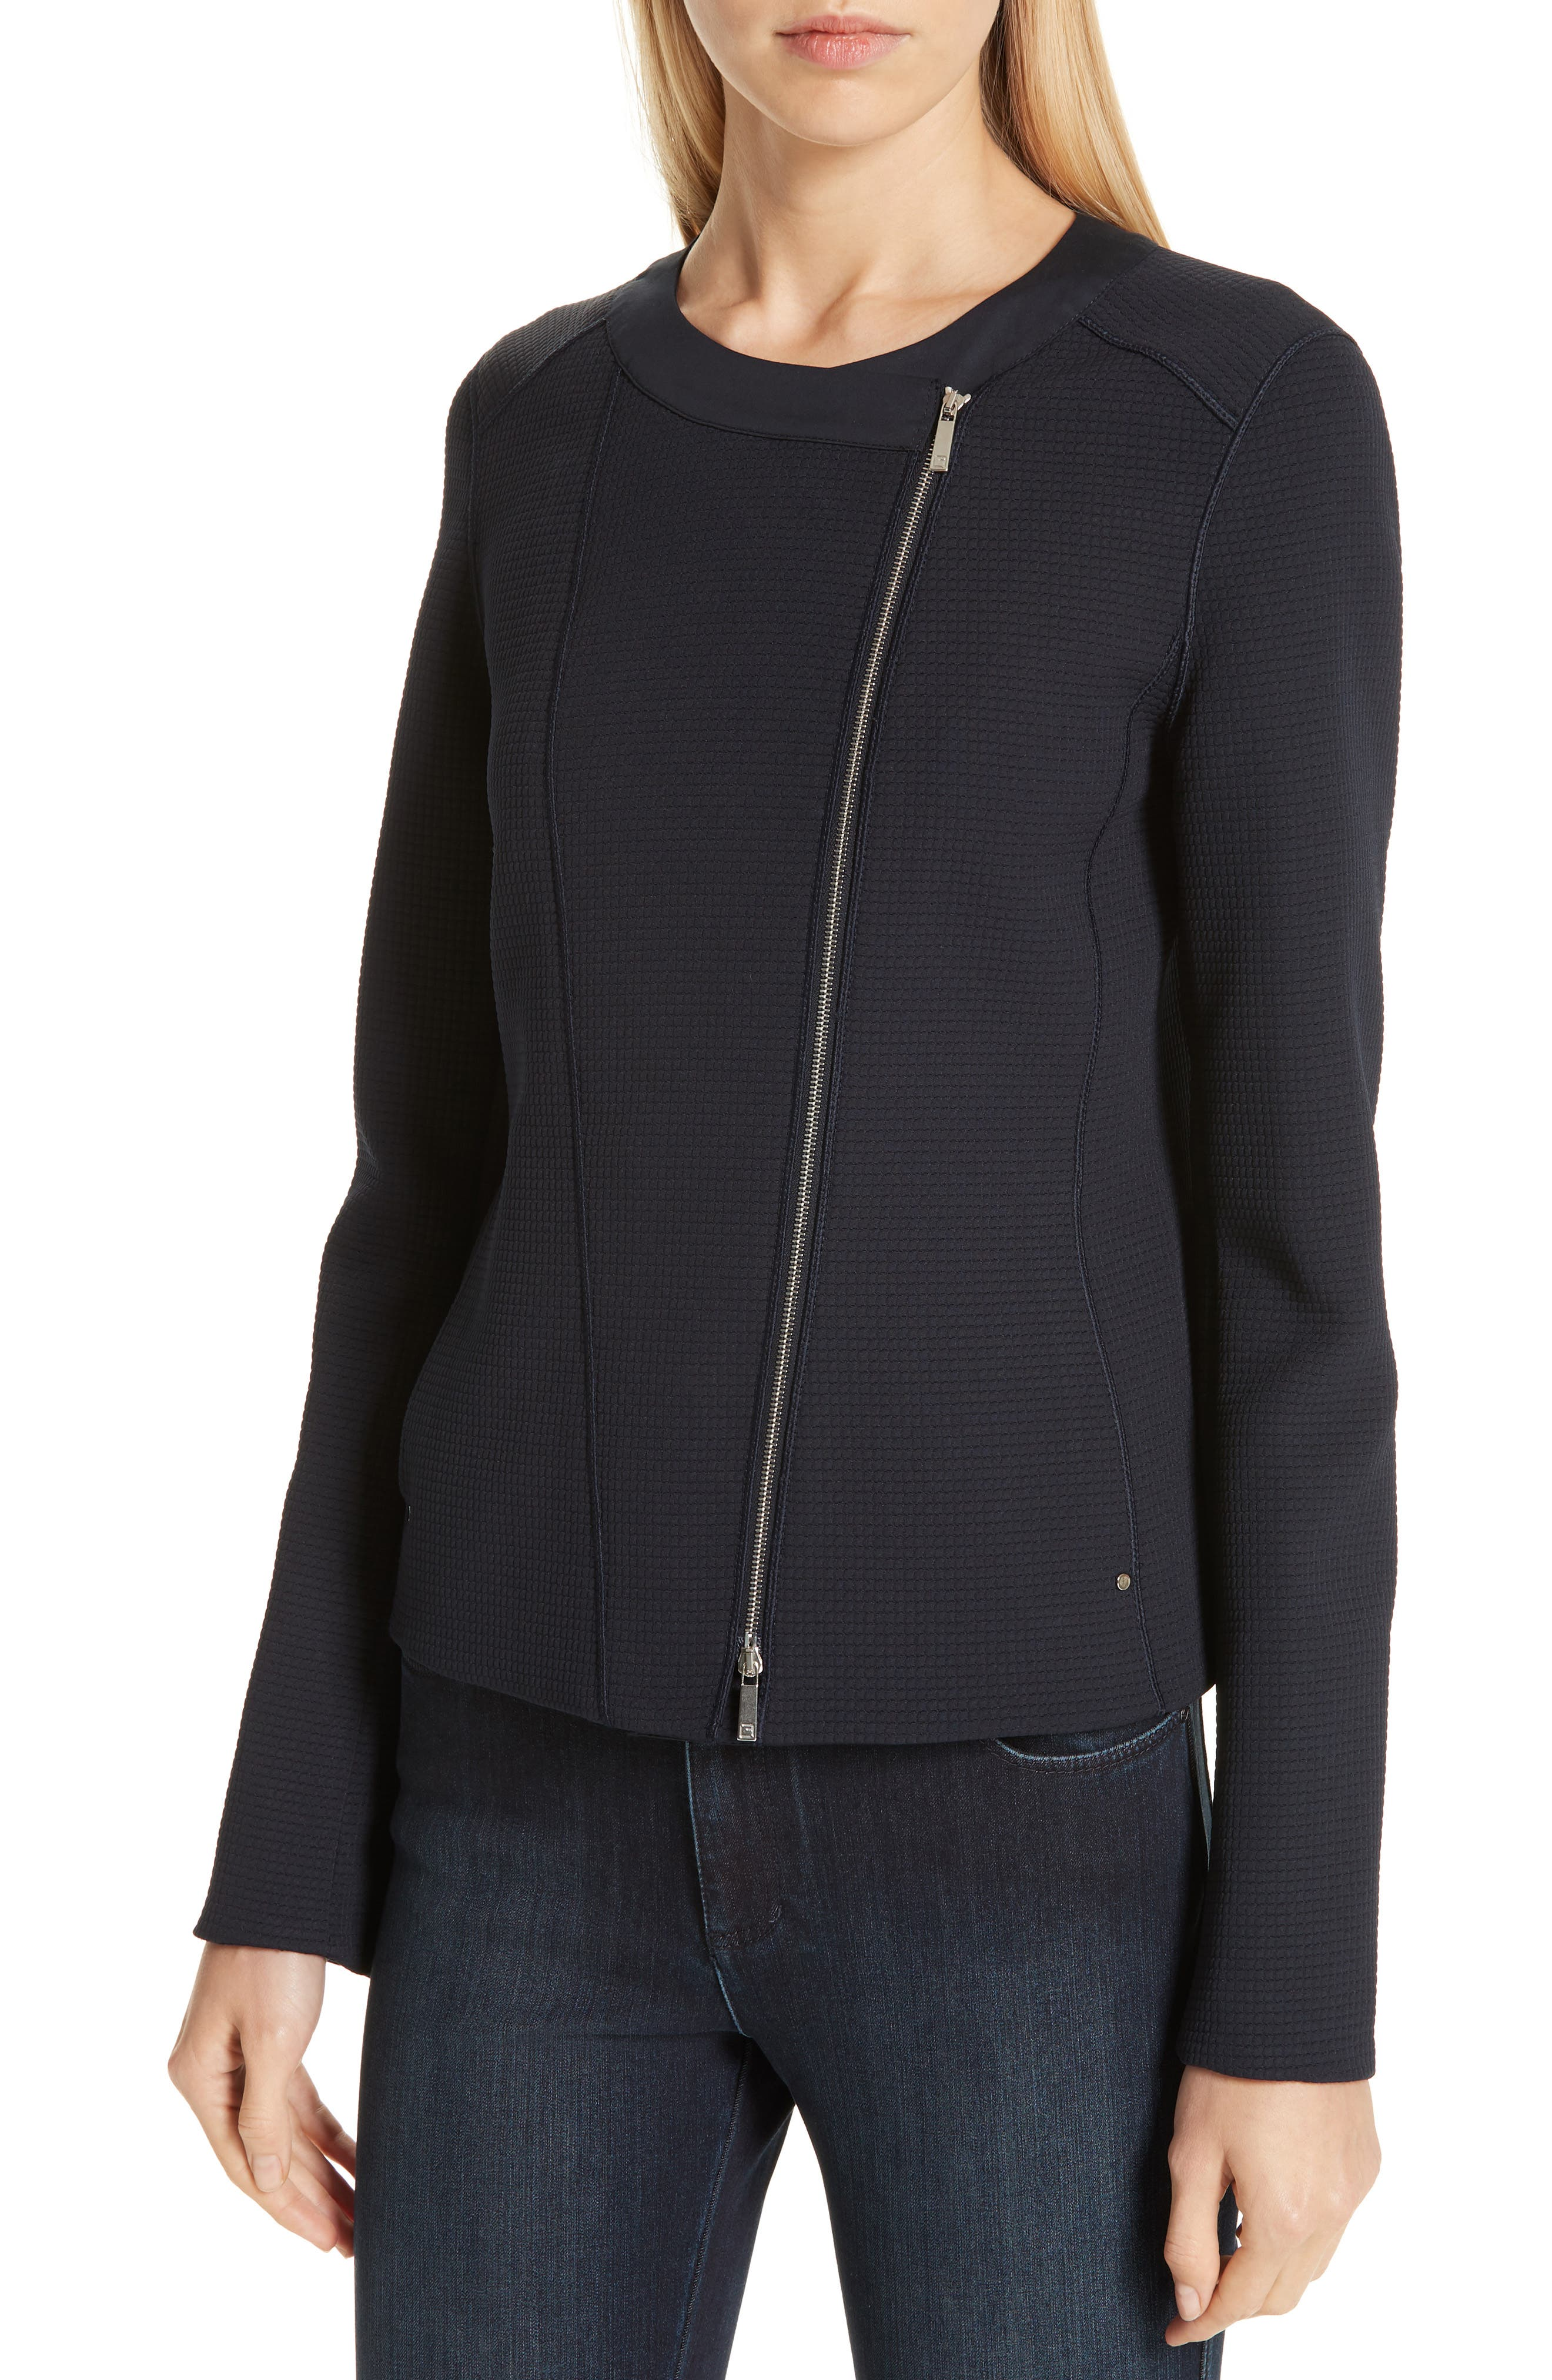 LAFAYETTE 148 NEW YORK, Trista Moto Jacket, Alternate thumbnail 5, color, INK